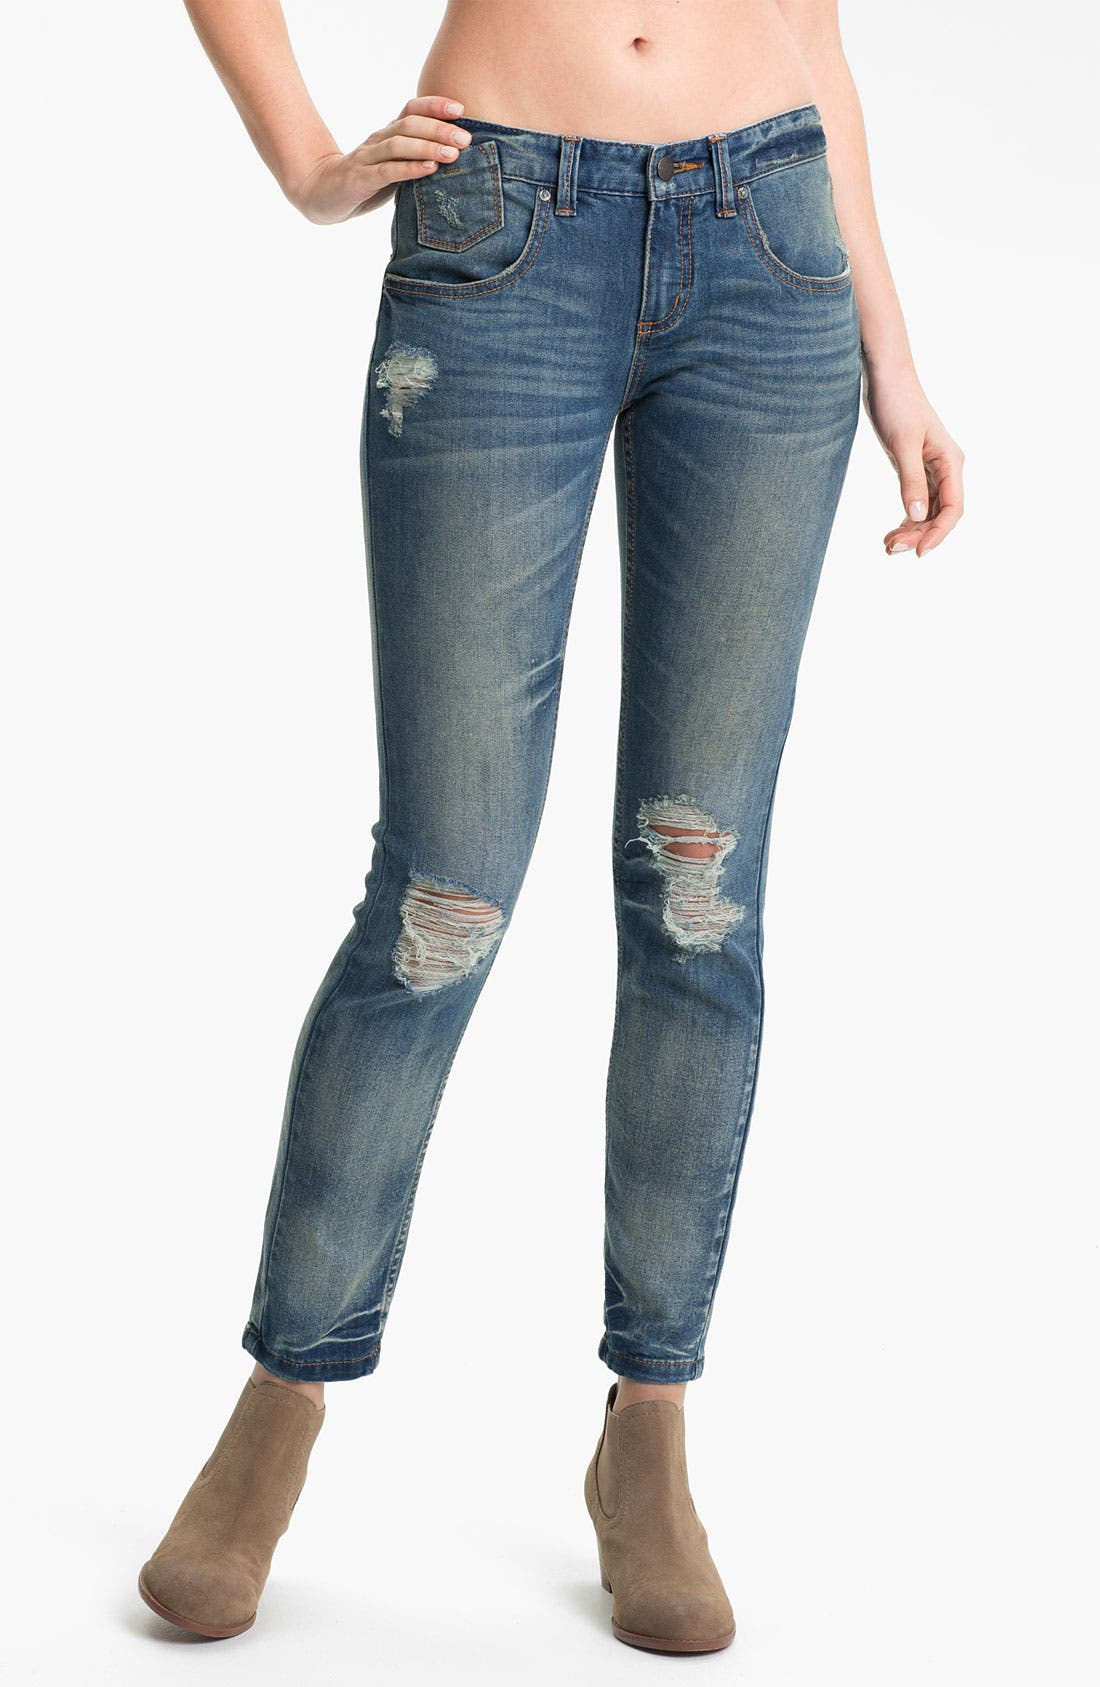 Alternate Image 1 Selected - Free People Destroyed Stretch Skinny Jeans (Engineer)